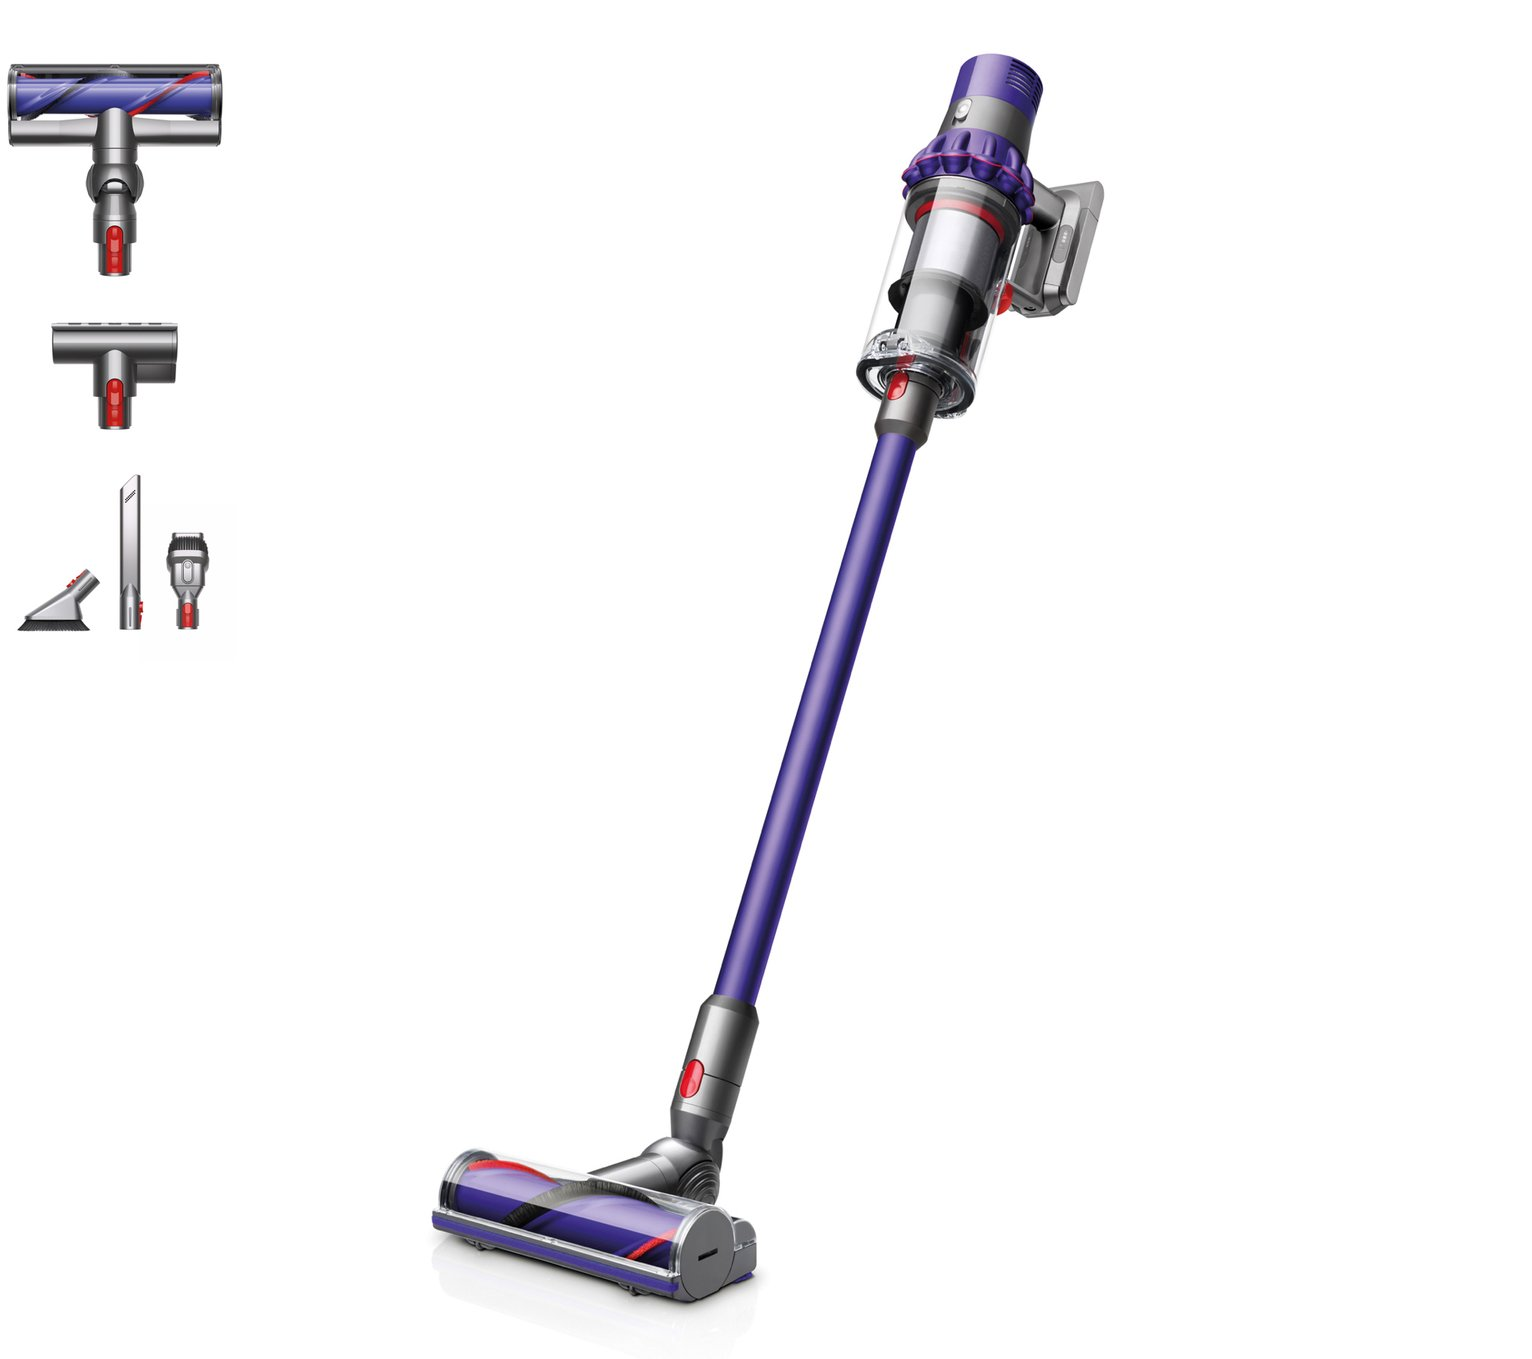 Image of: Handstick Dyson Cyclone V10 Animal Cordless Vacuum Cleaner Argos Results For Dyson V6 Animal Cordless